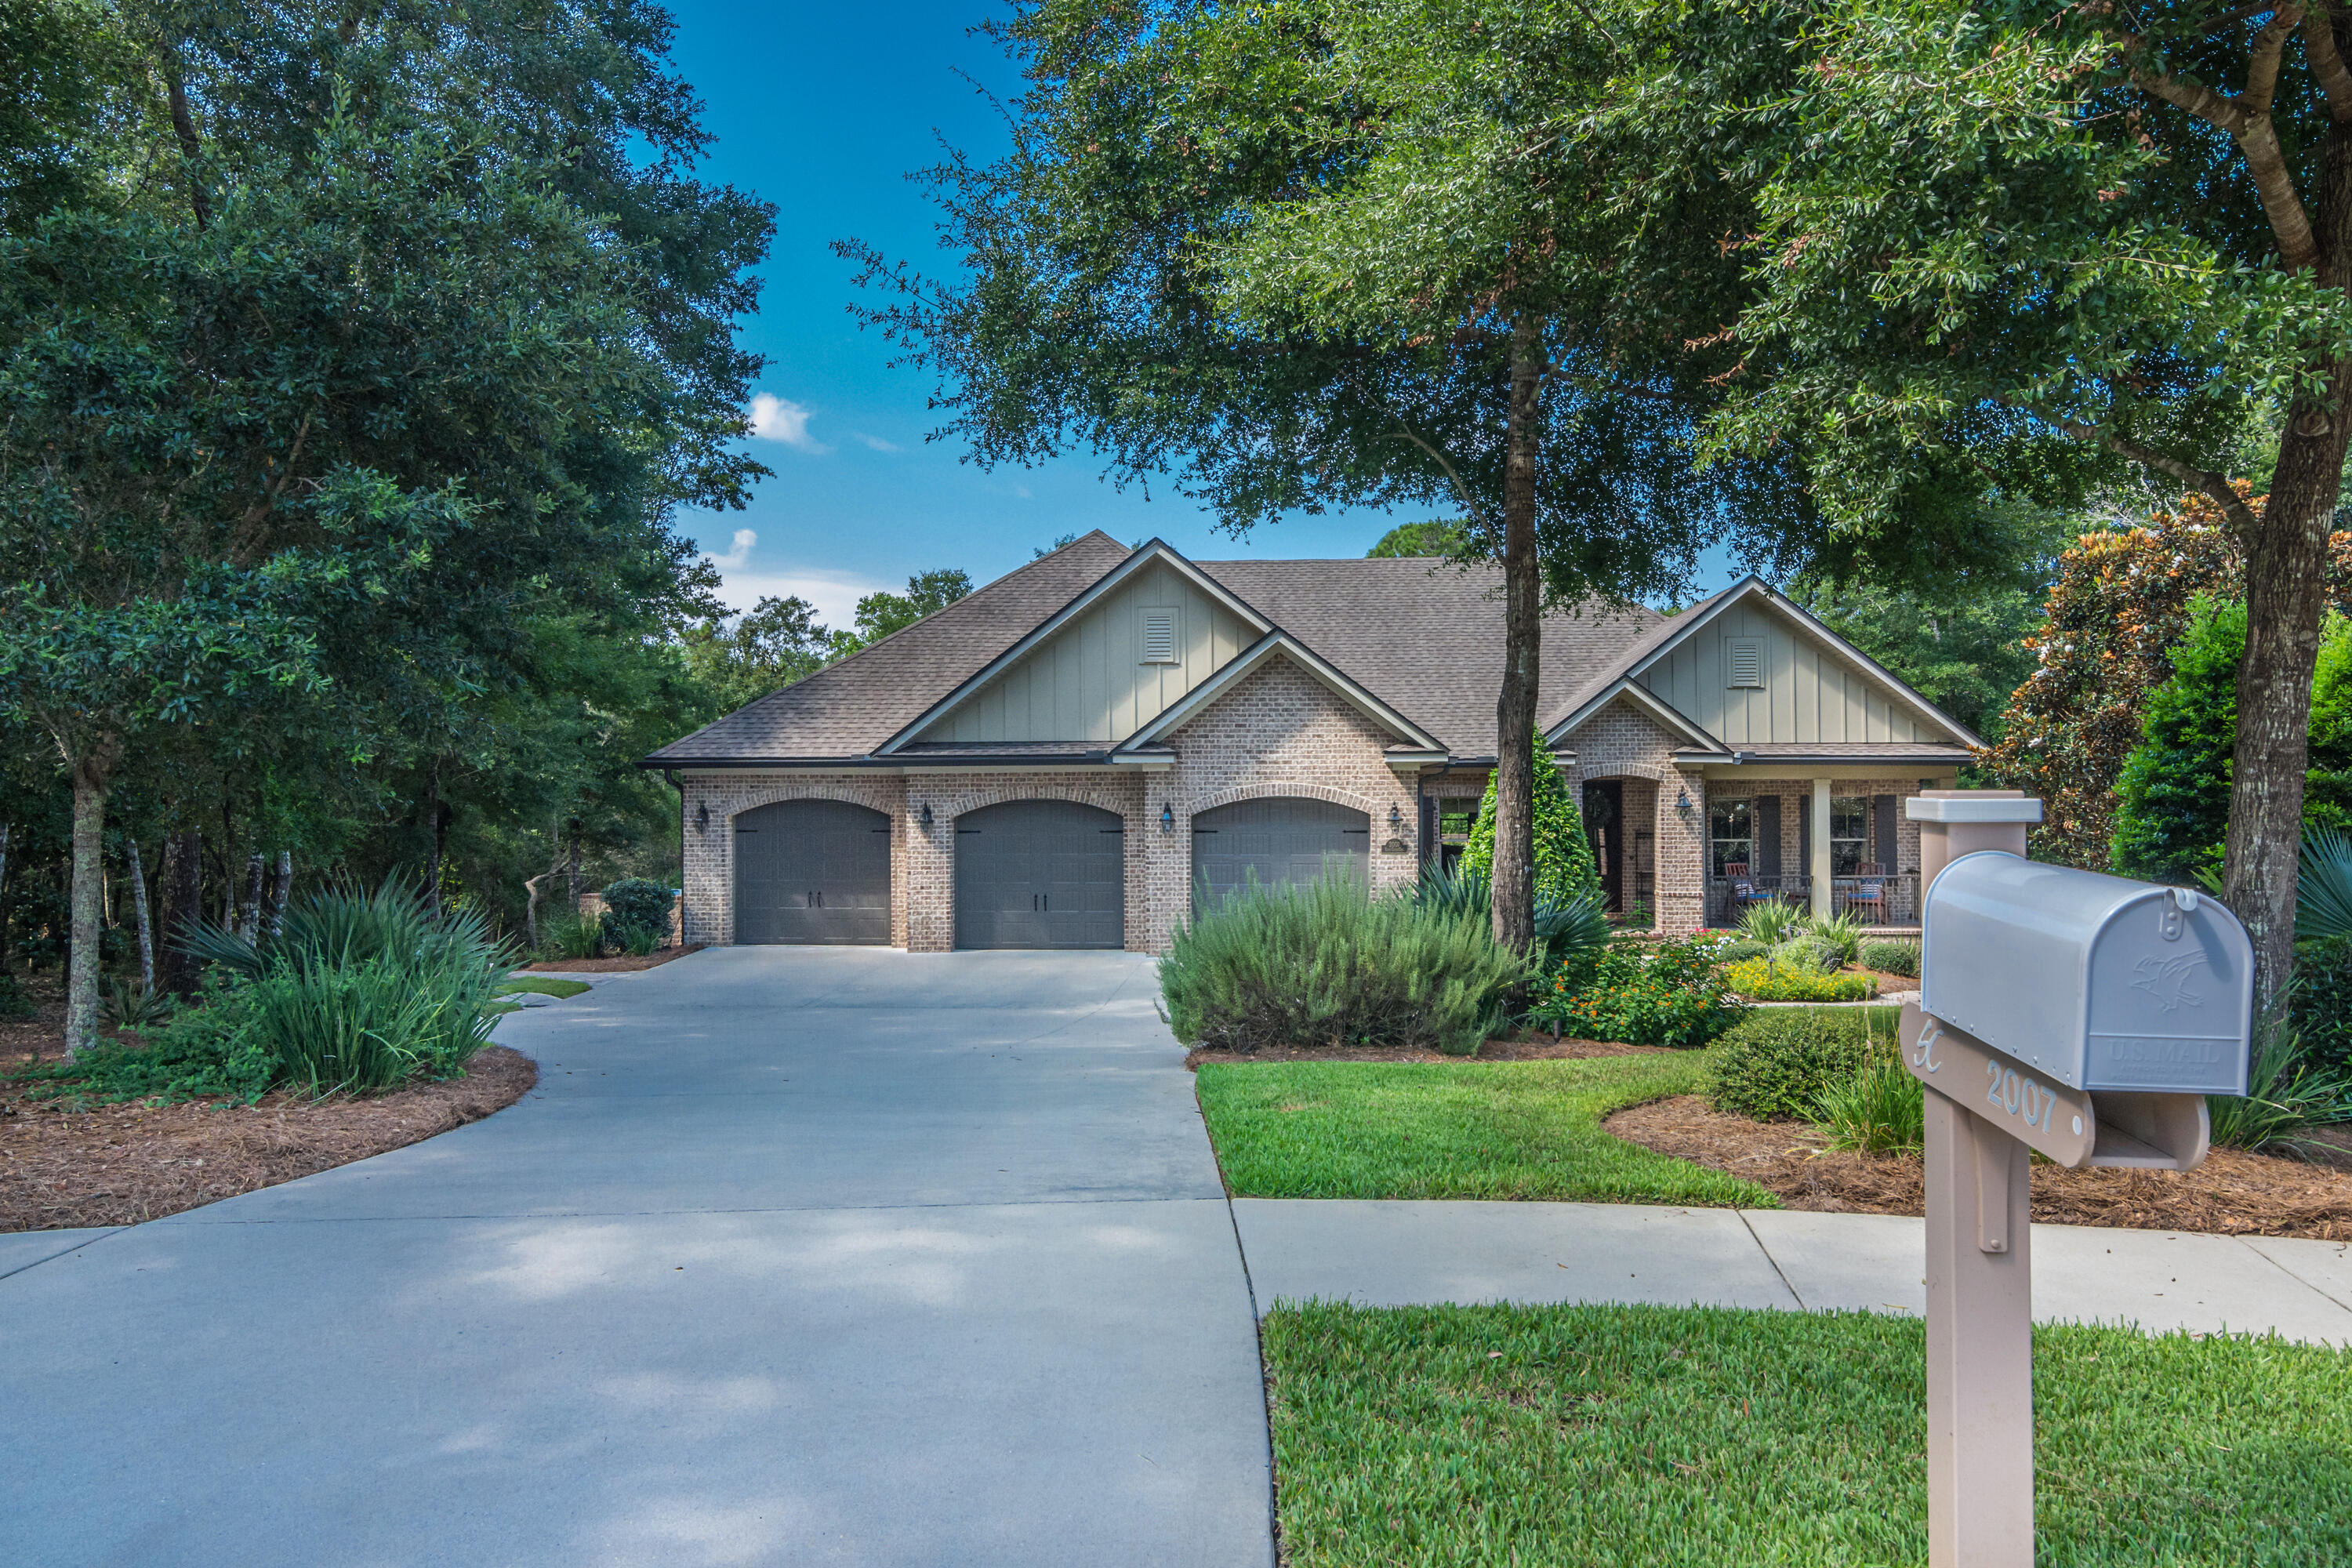 This stunning custom built home by Randy Wise is located on a private quiet cul-de-sac in the desirable Swift Creek neighborhood. If you are looking for tranquility and peacefulness, then this is the perfect home.  It boasts 4546 sq. ft. of high appointed finishes, surround sound, custom cabinetry, designer lighting, central vac, and hurricane impact windows in the dining area, master bedroom, and master bath. Added security provided by a built-in security system. Whole house Generac generator (with transferable 10-year warranty) installed in 2019 to automatically provide power for entire home. Master bedroom suite, two other bedrooms and office/study are located upstairs. Wood floors throughout most of upstairs, extra bedrooms have carpet.